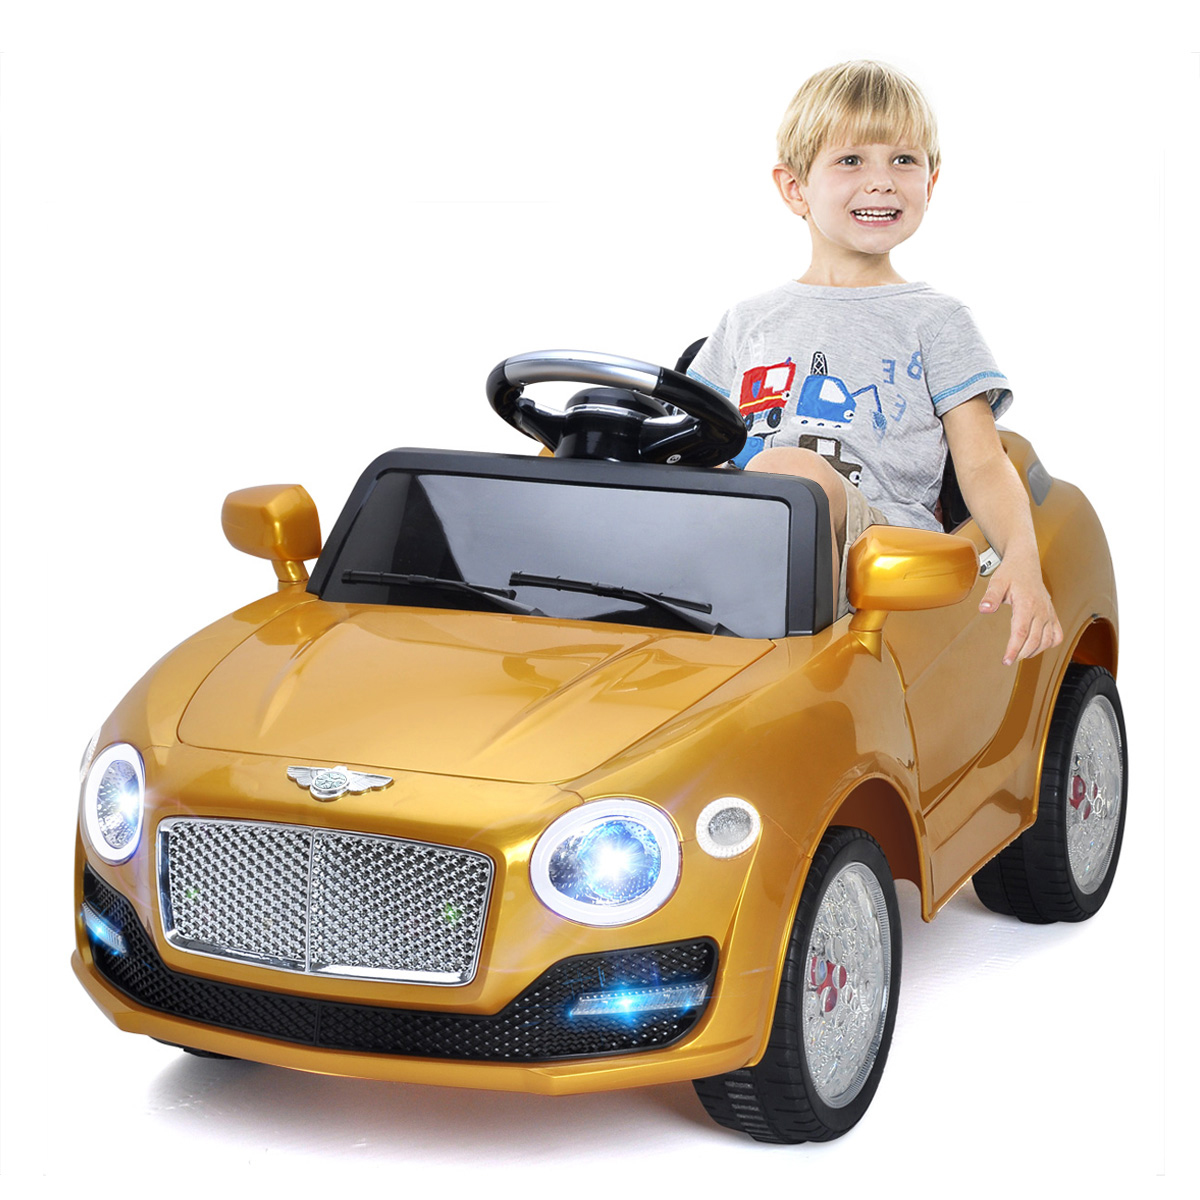 Costway 6V Kids Ride On Car Electric Battery Power RC Remote Control & Doors w/ MP3 Red/White/Golden